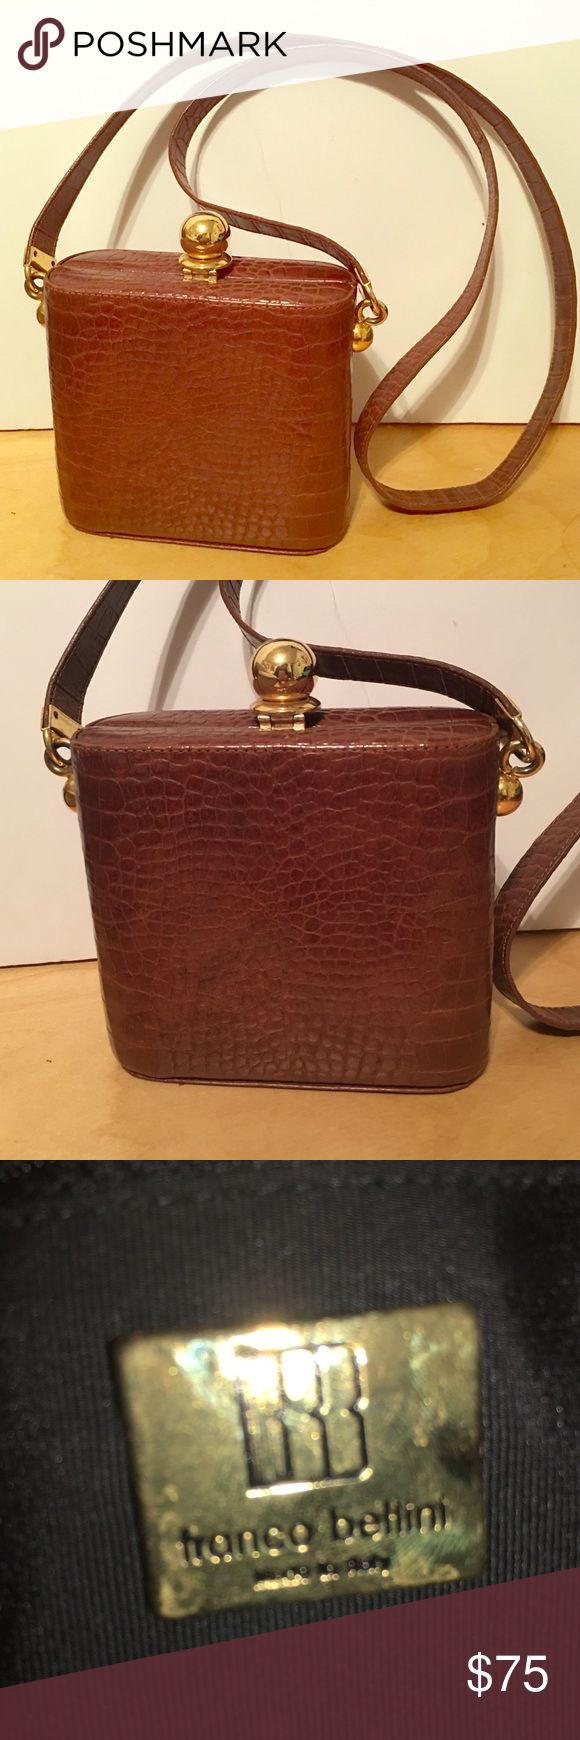 Franco Bellini Vintage Flask Gold Leather Purse Beautiful leather Flask purse with stunning gold hardware by Franco Bellini. In great preloved condition. Very unique! Franco Bellini Bags Clutches & Wristlets